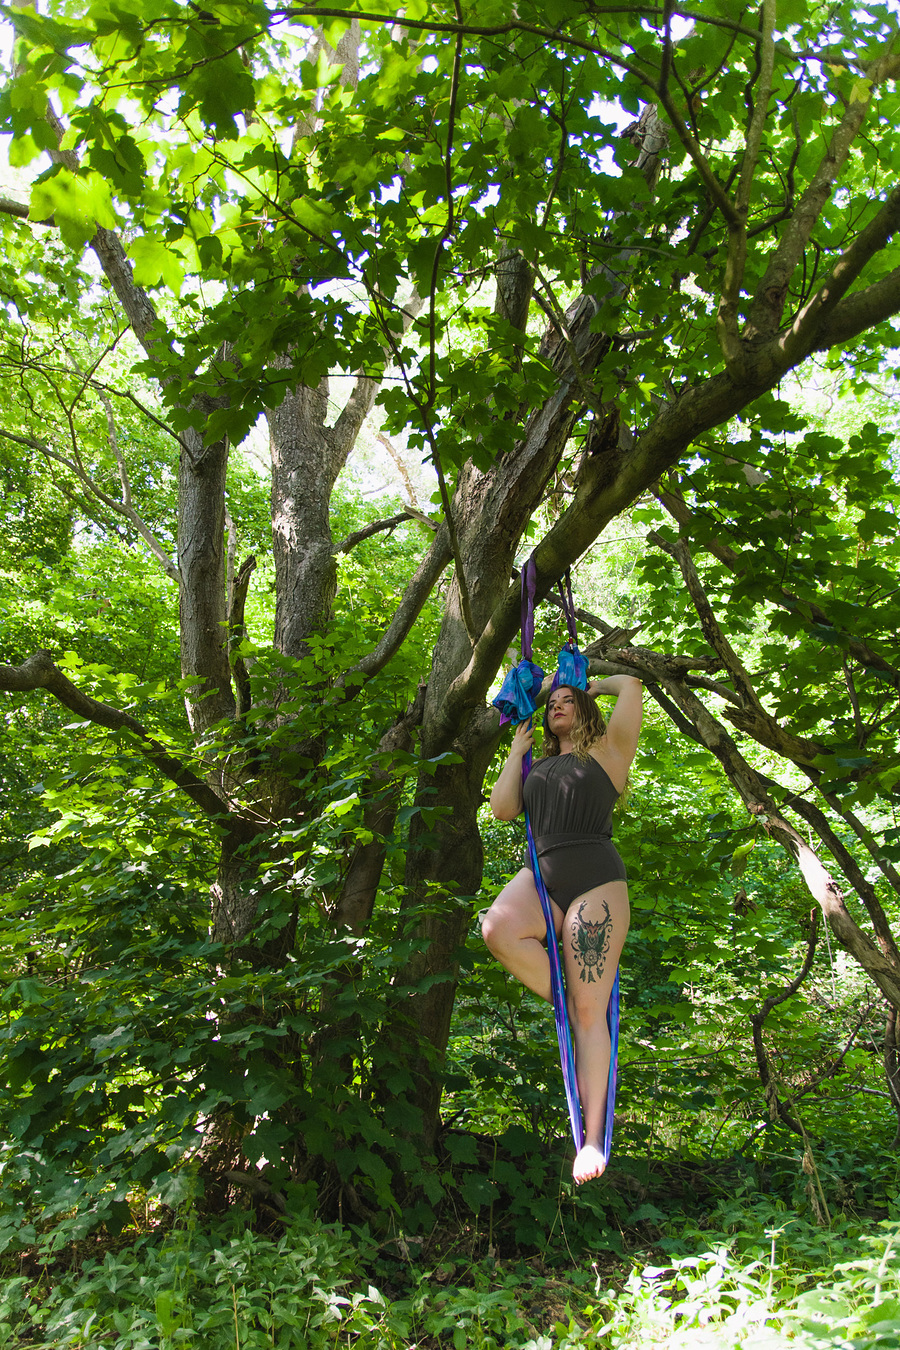 Woodland Nymph / Model Megsy Vicious / Uploaded 12th July 2017 @ 06:22 PM